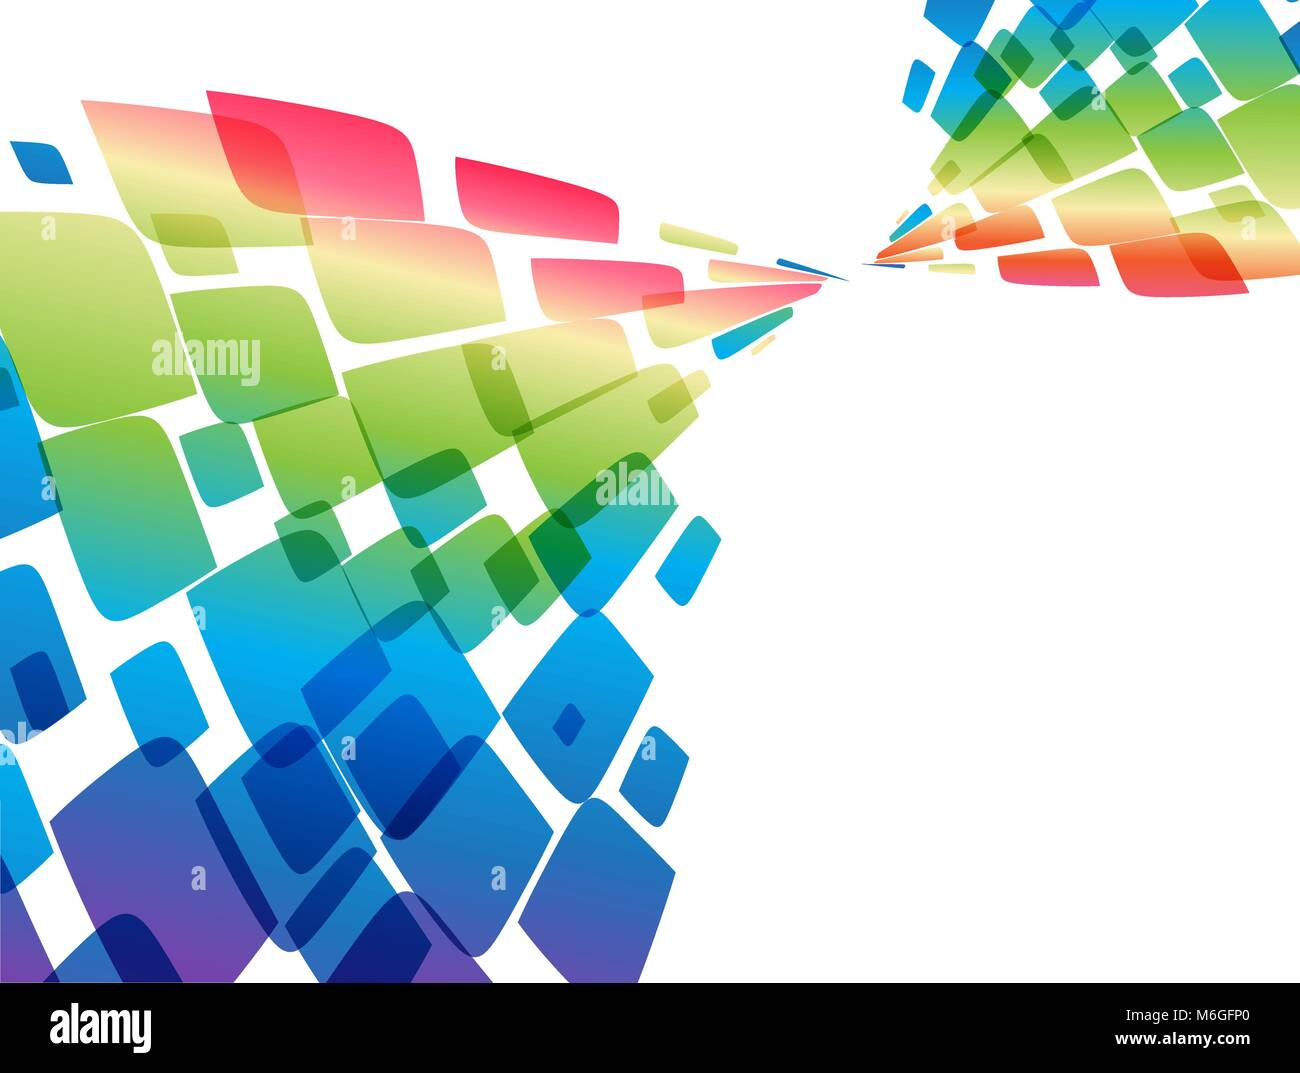 Colorful Abstract Background Vector Template Stock Vector